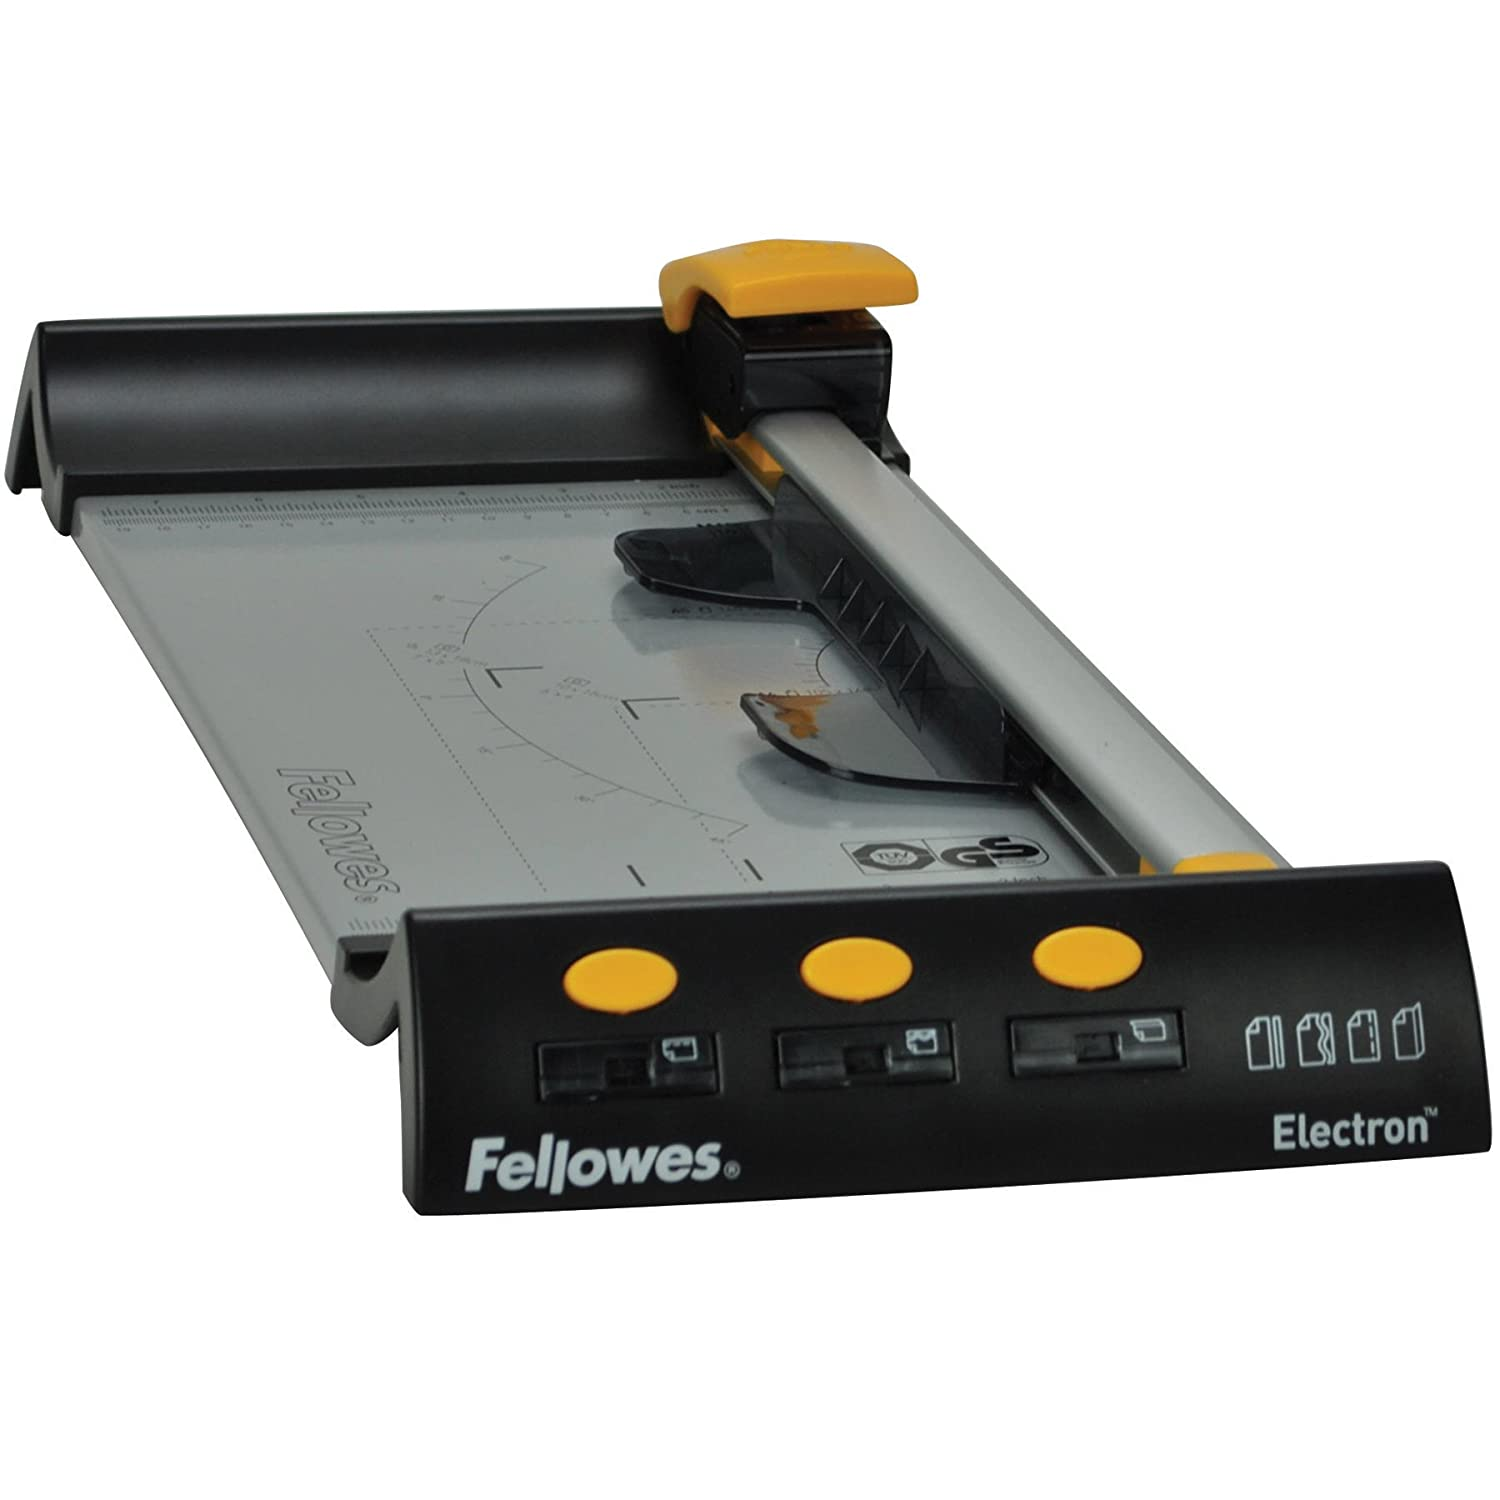 Fellowes 5410402 Electron 120 Trimmer Office Supplies